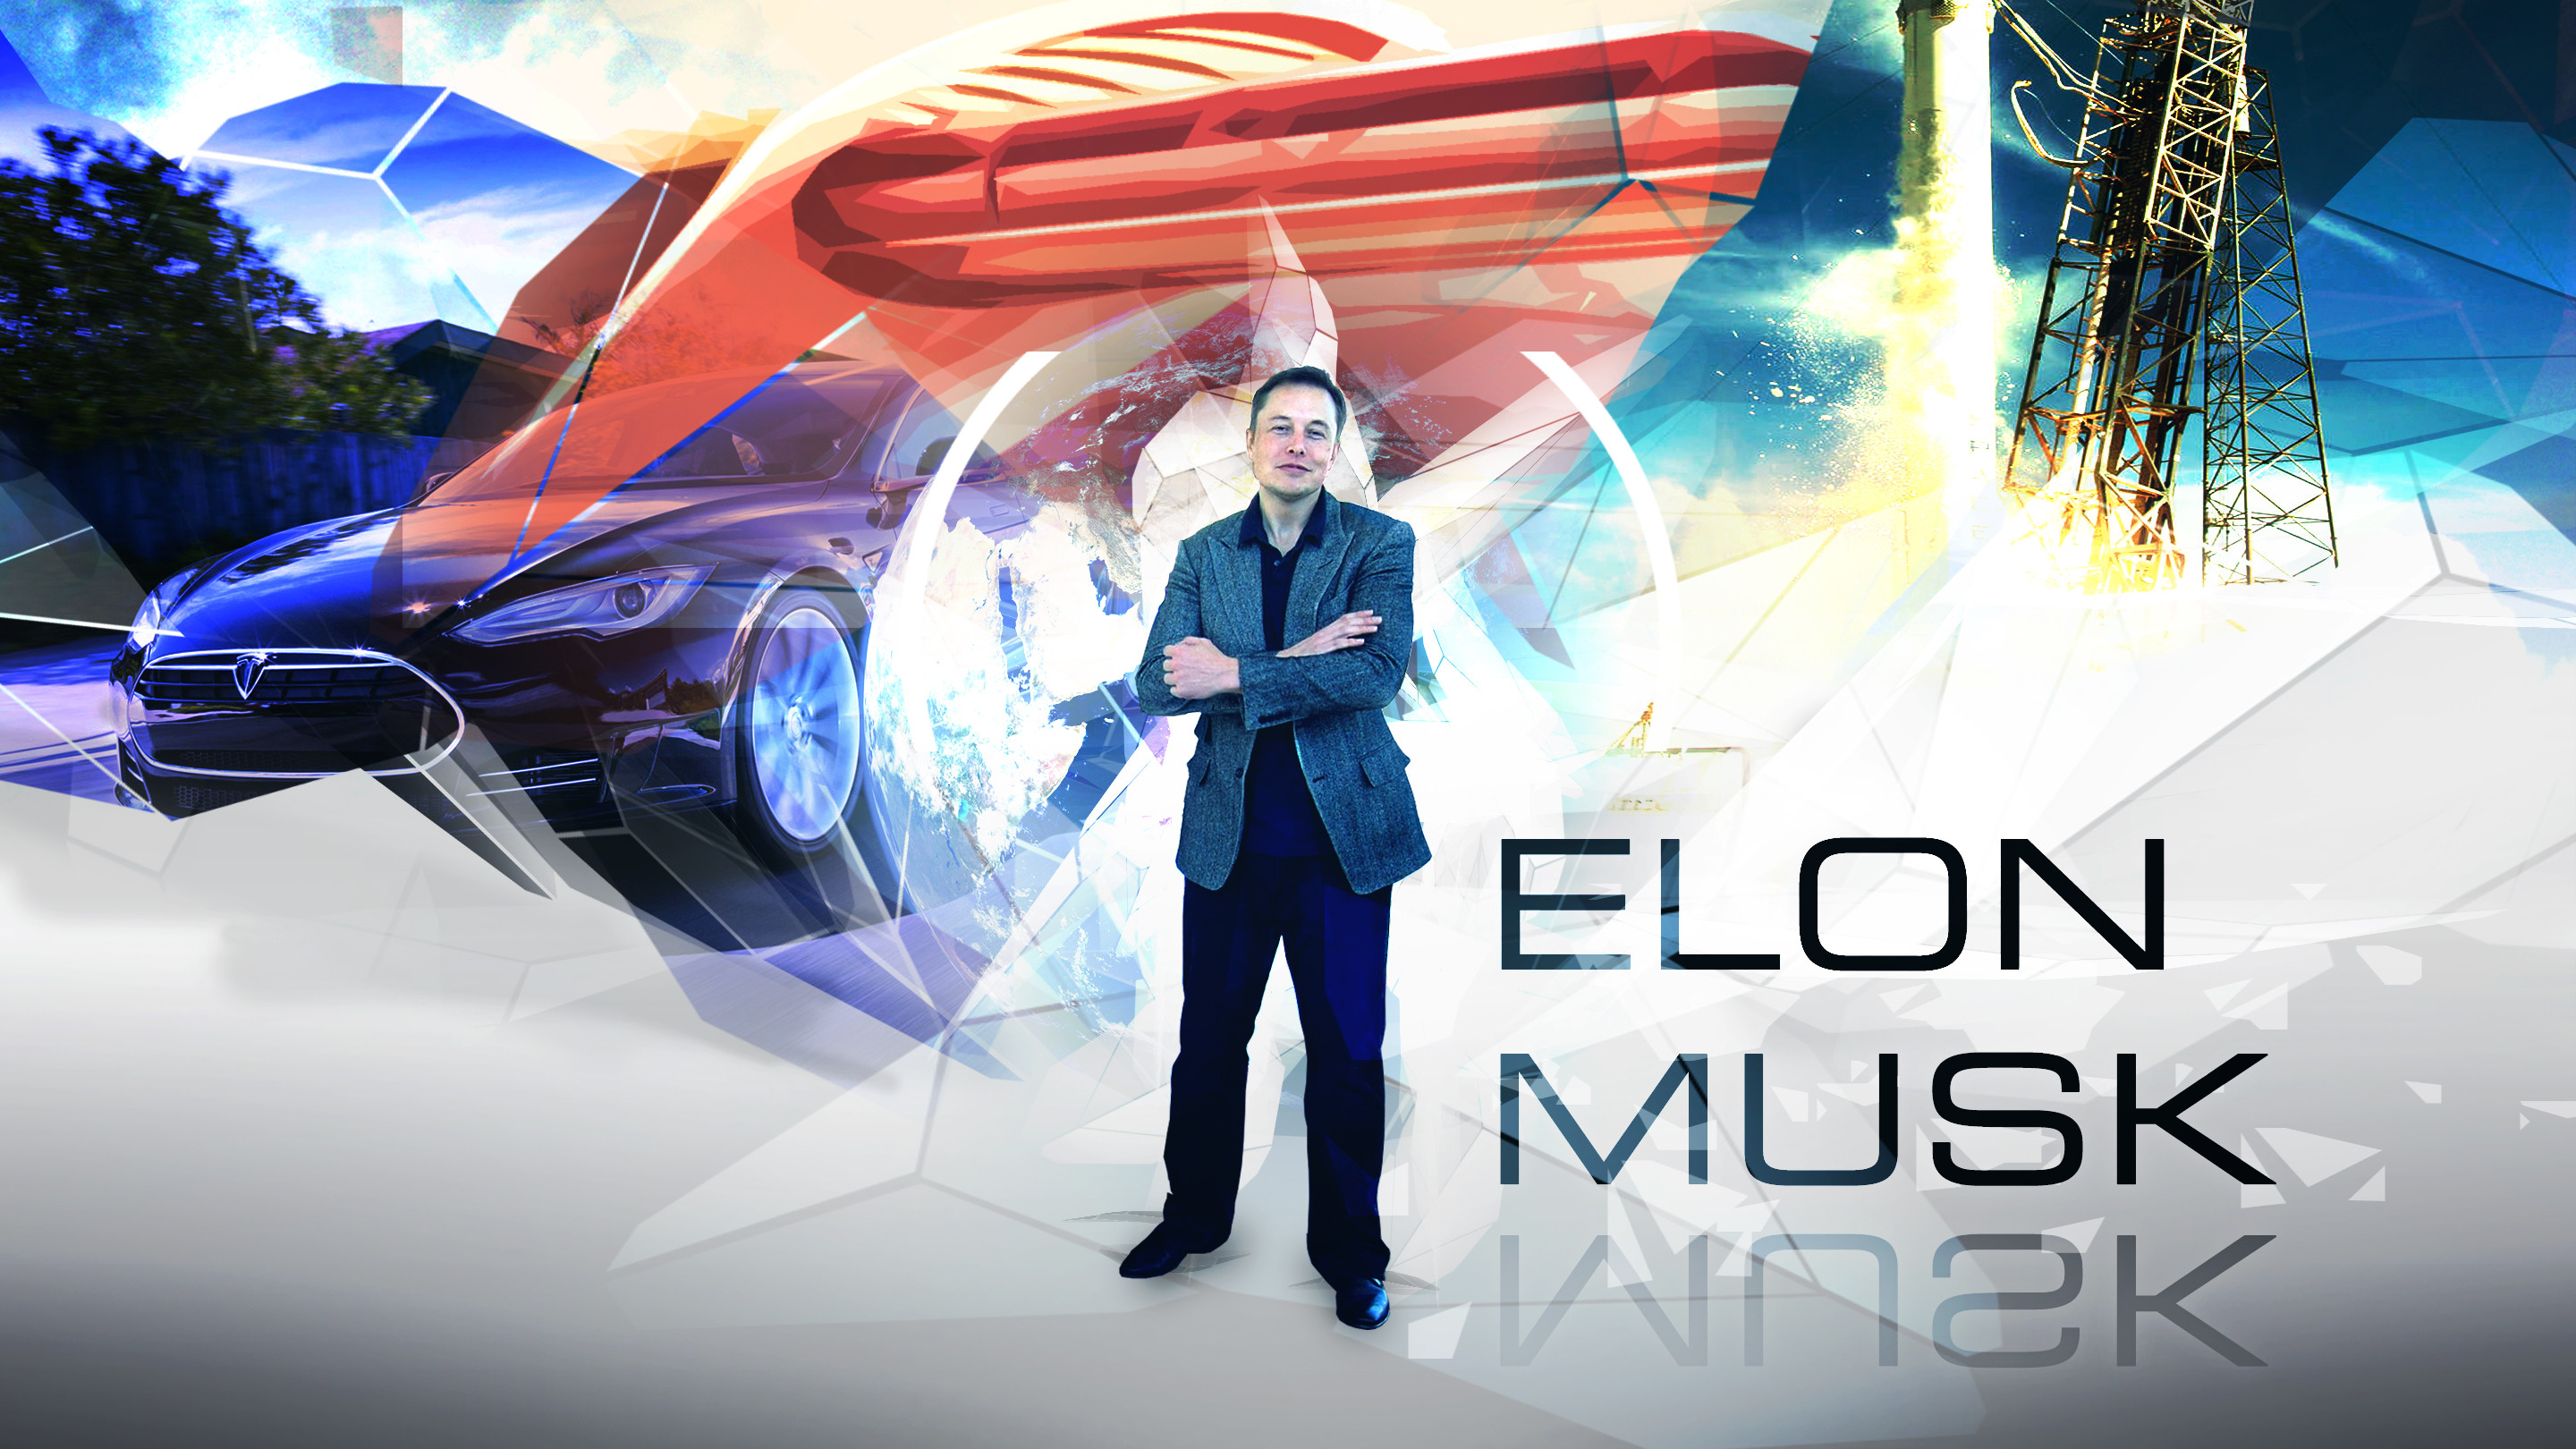 … Elon Musk wallpaper 16:9 by Klamek97